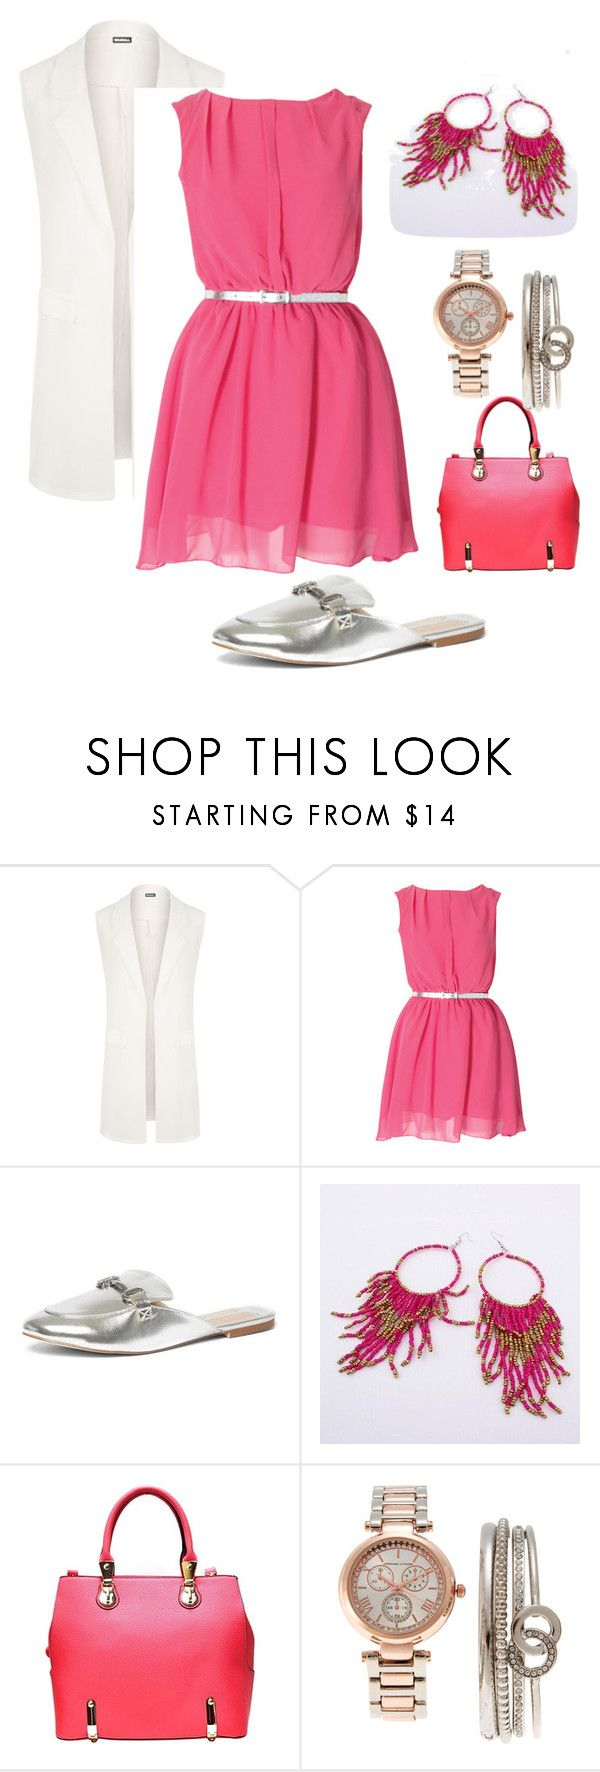 """""""Summer Teacher under $50 #2"""" by lizzette-reyes-lafontaine on Polyvore featuring WearAll, Dorothy Perkins and Adrienne Vittadini"""